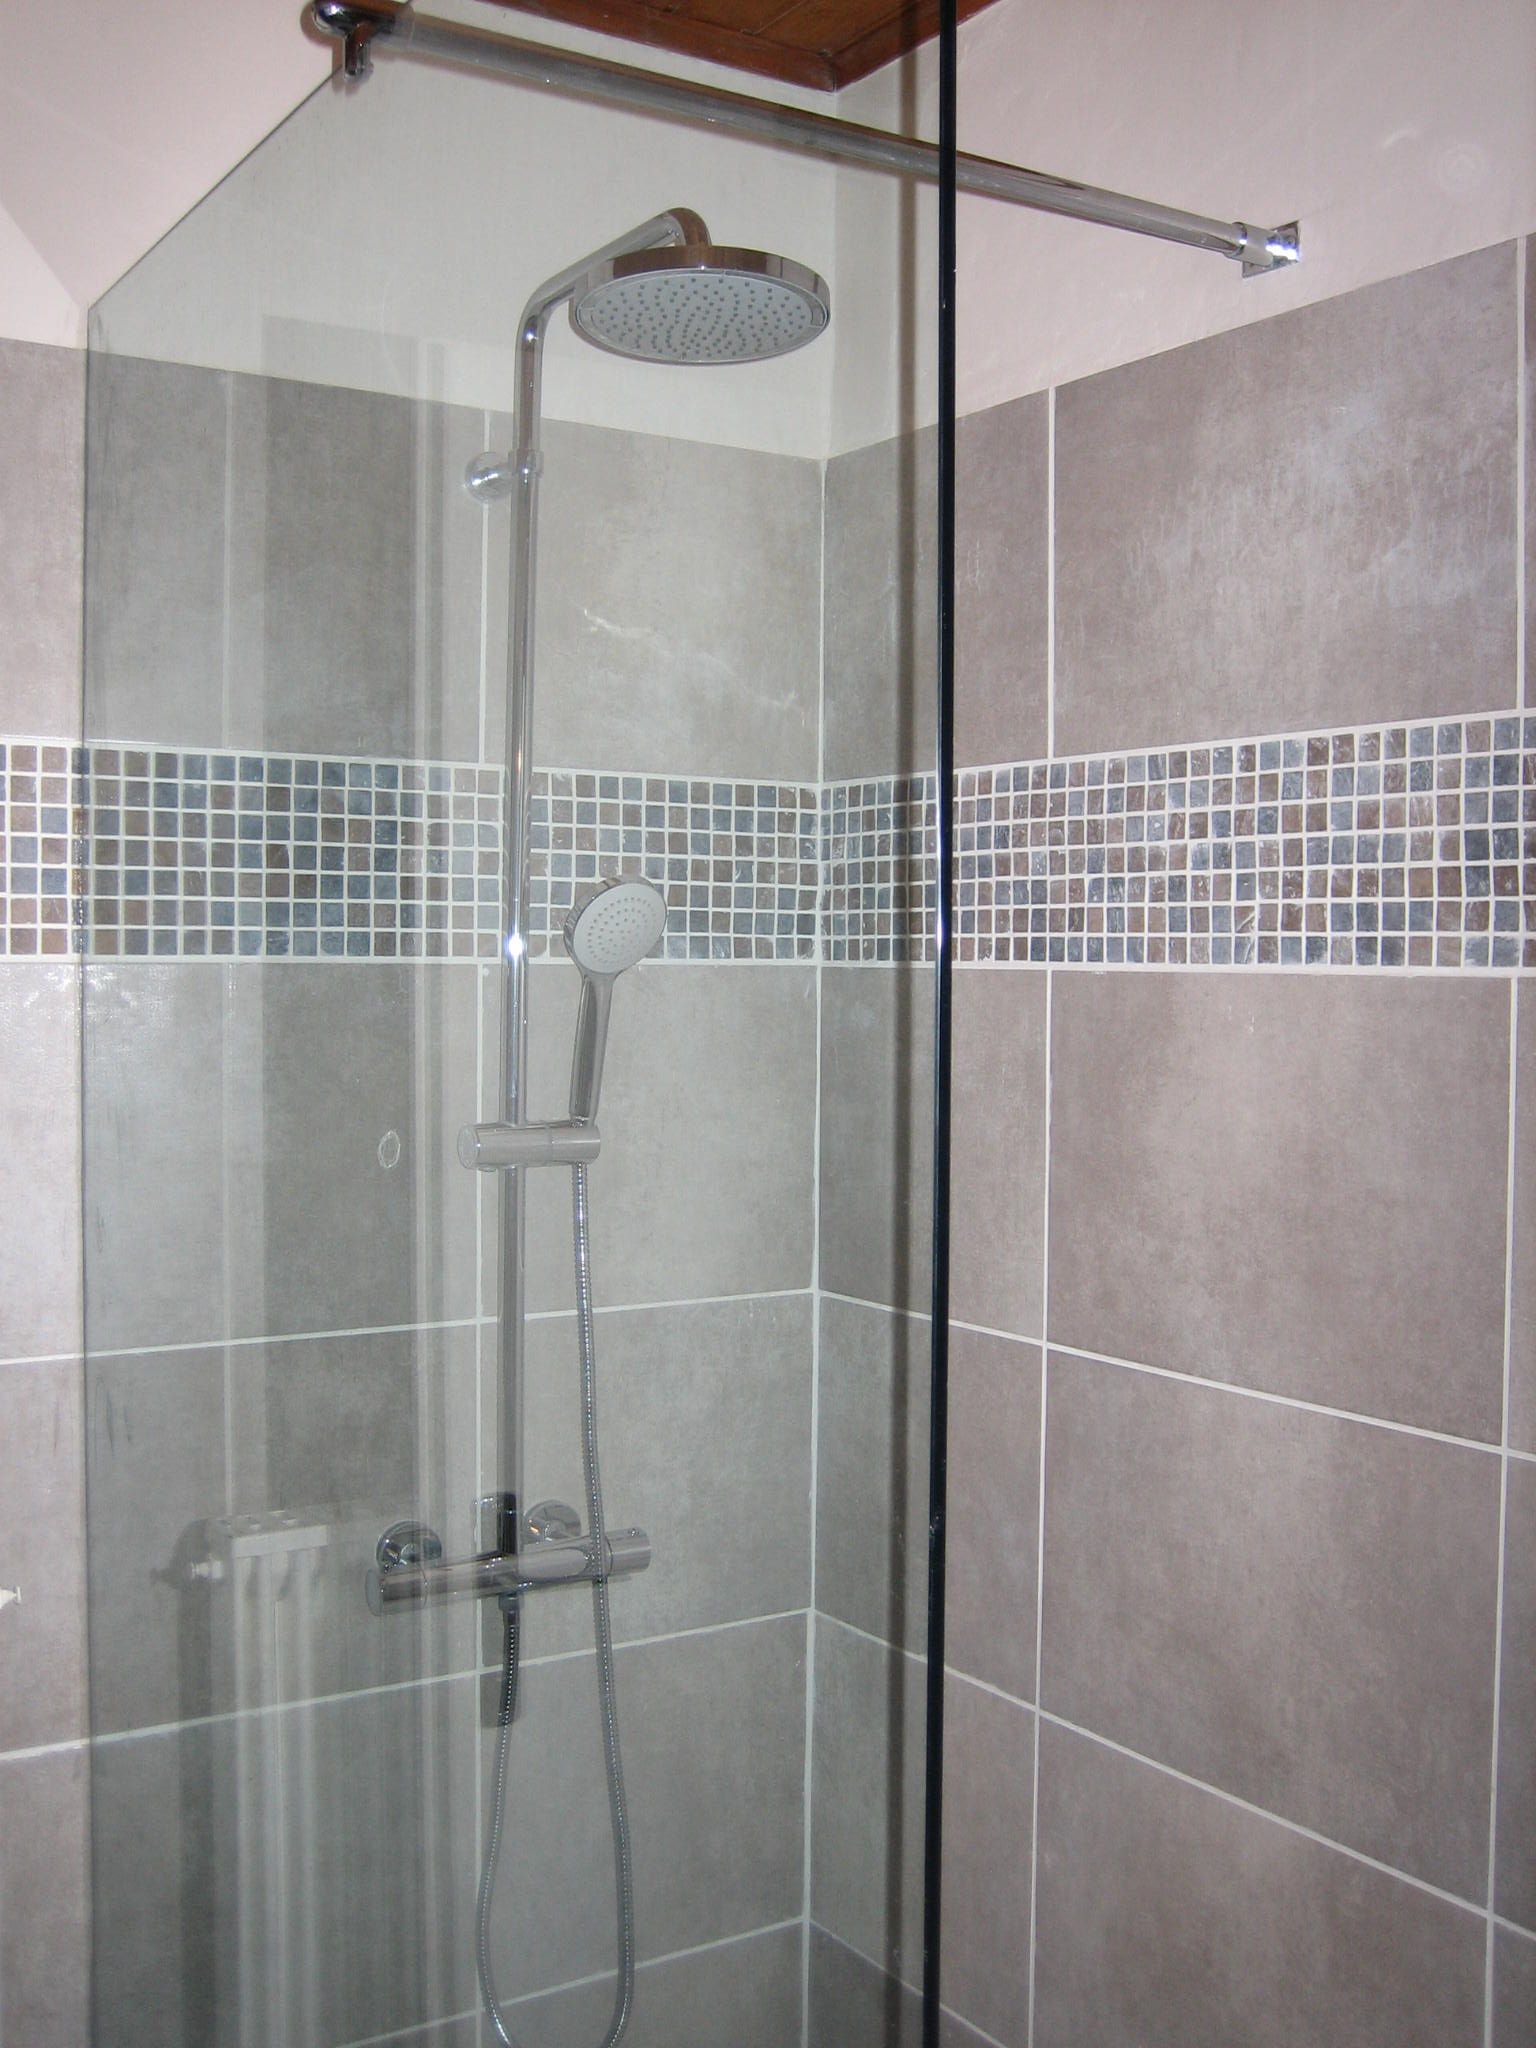 Only One Fixture With Hand Shower And Fixed Head Very Cost